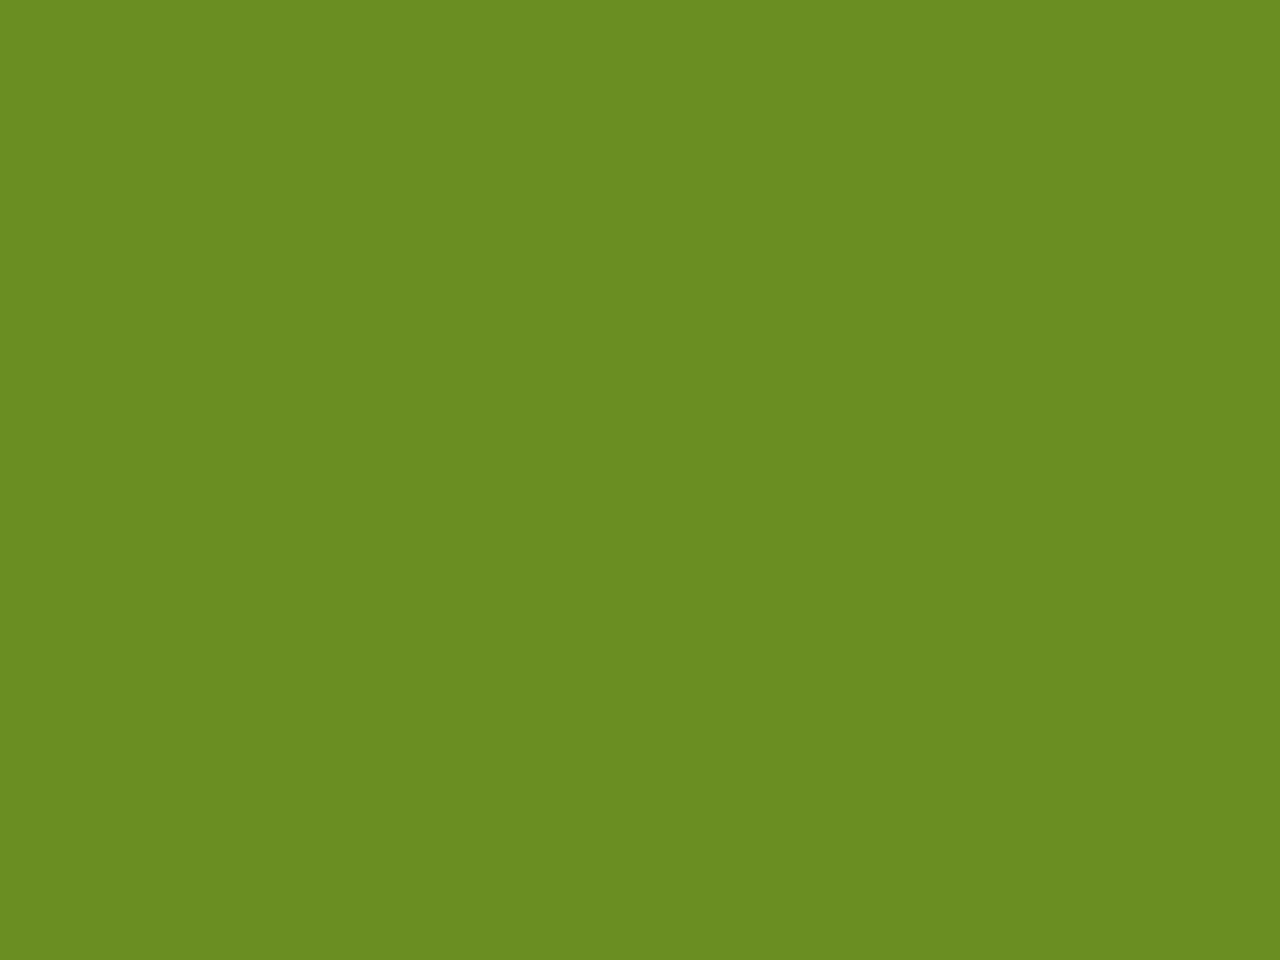 1280x960 Olive Drab Number Three Solid Color Background